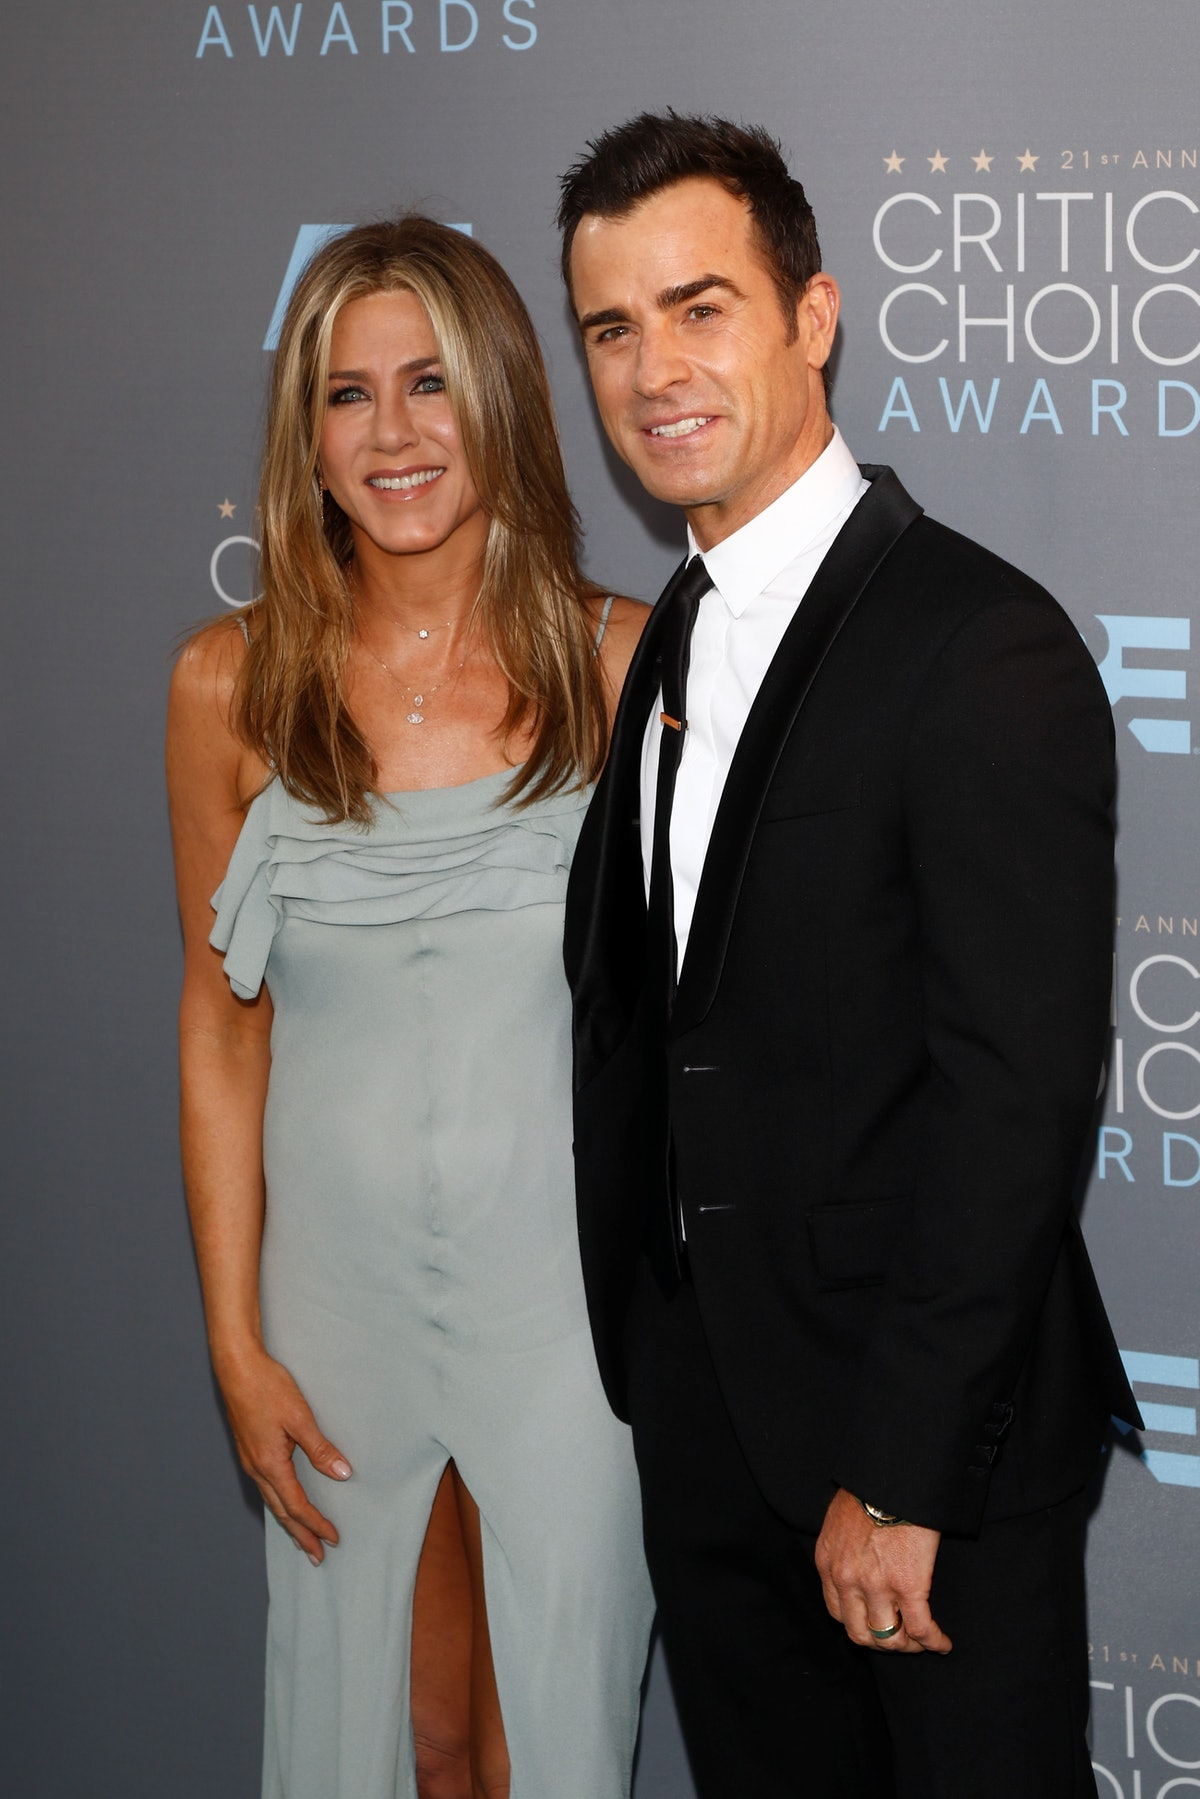 Jennifer Aniston and Justin Theroux were married.